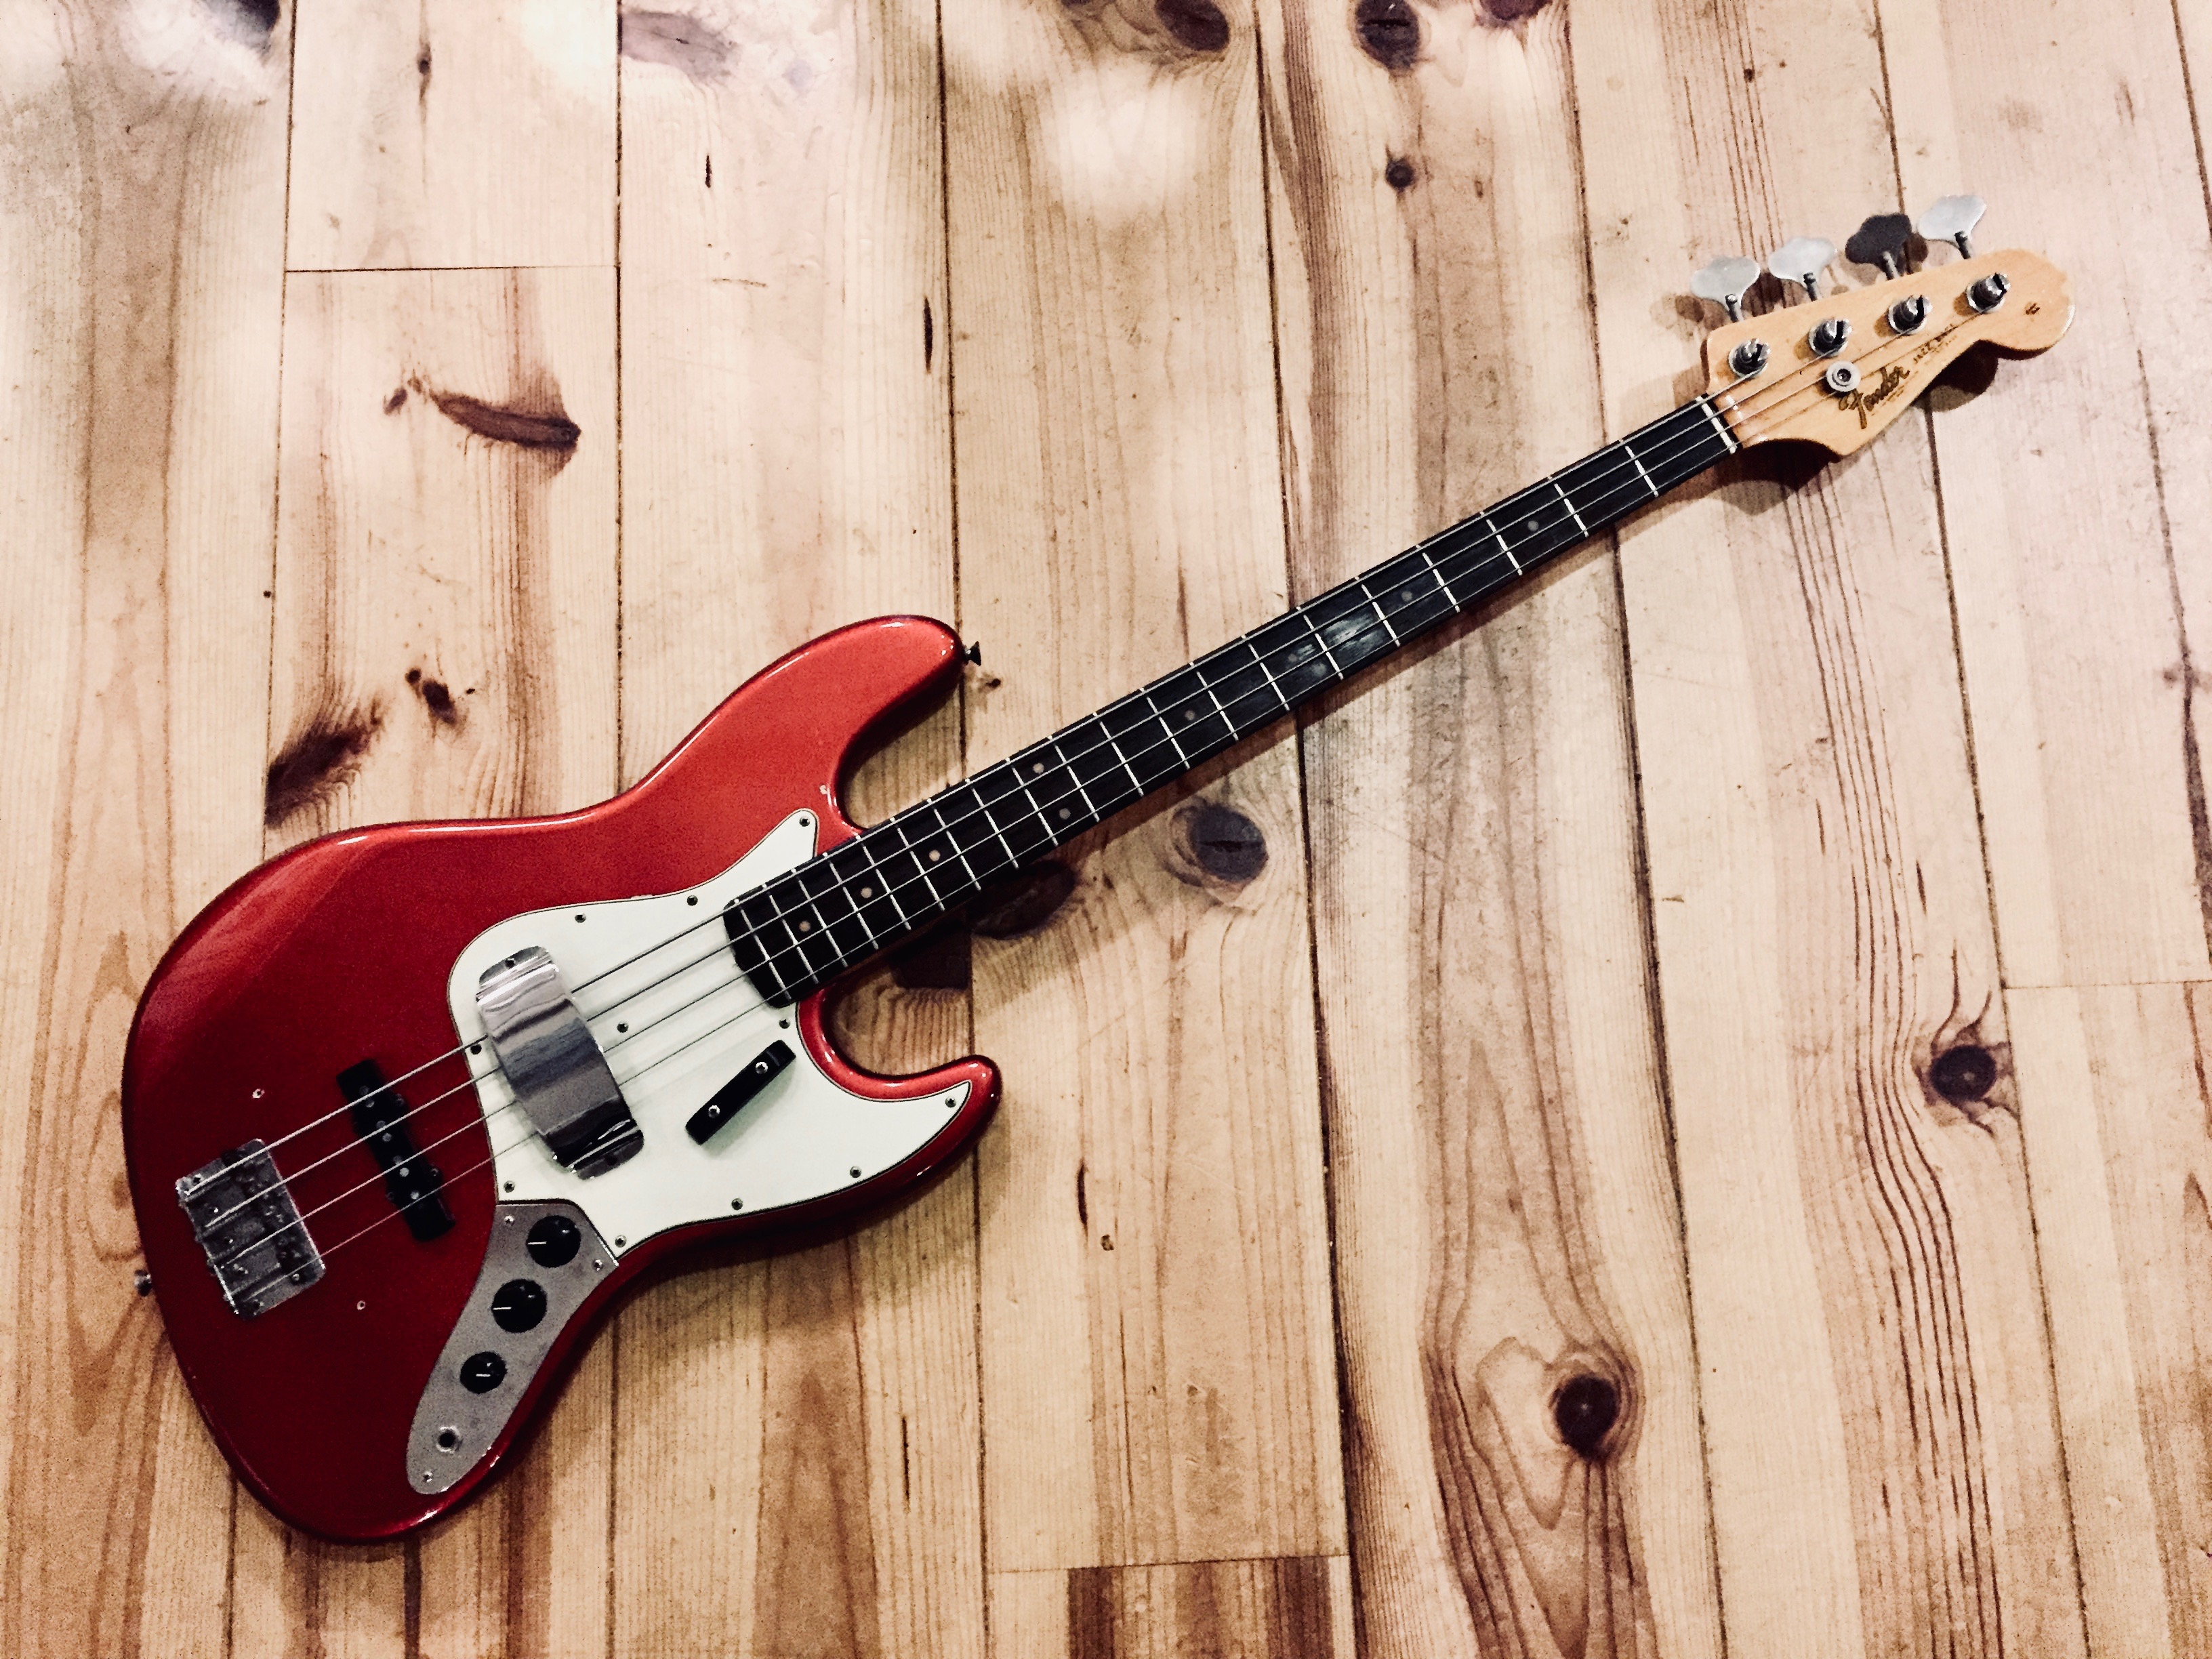 Fender - 1964 Jazz bass